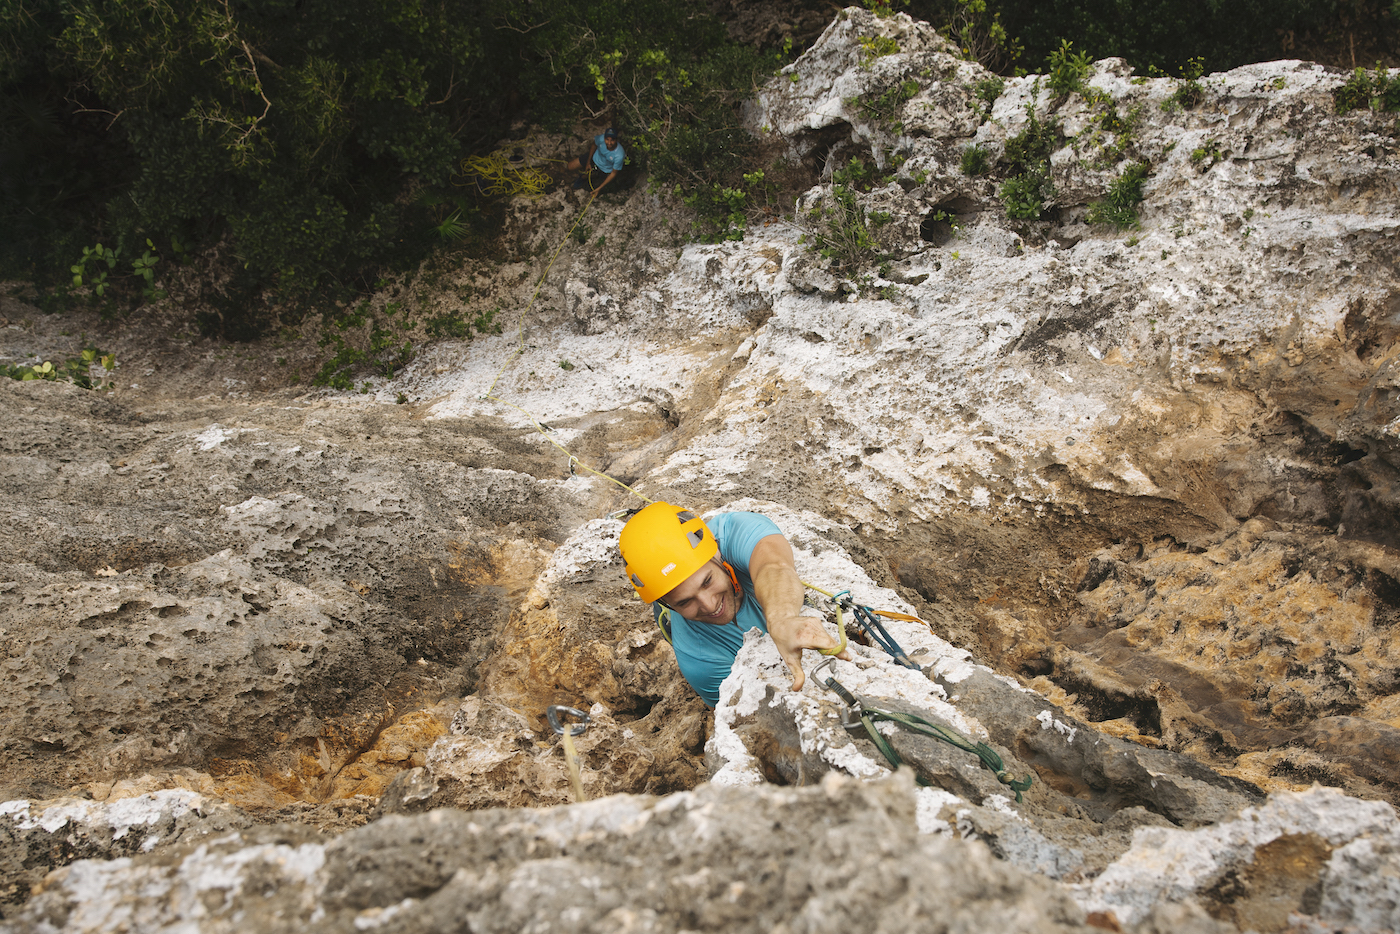 Juan trad climbing in Jamaica, protecting himself with slings